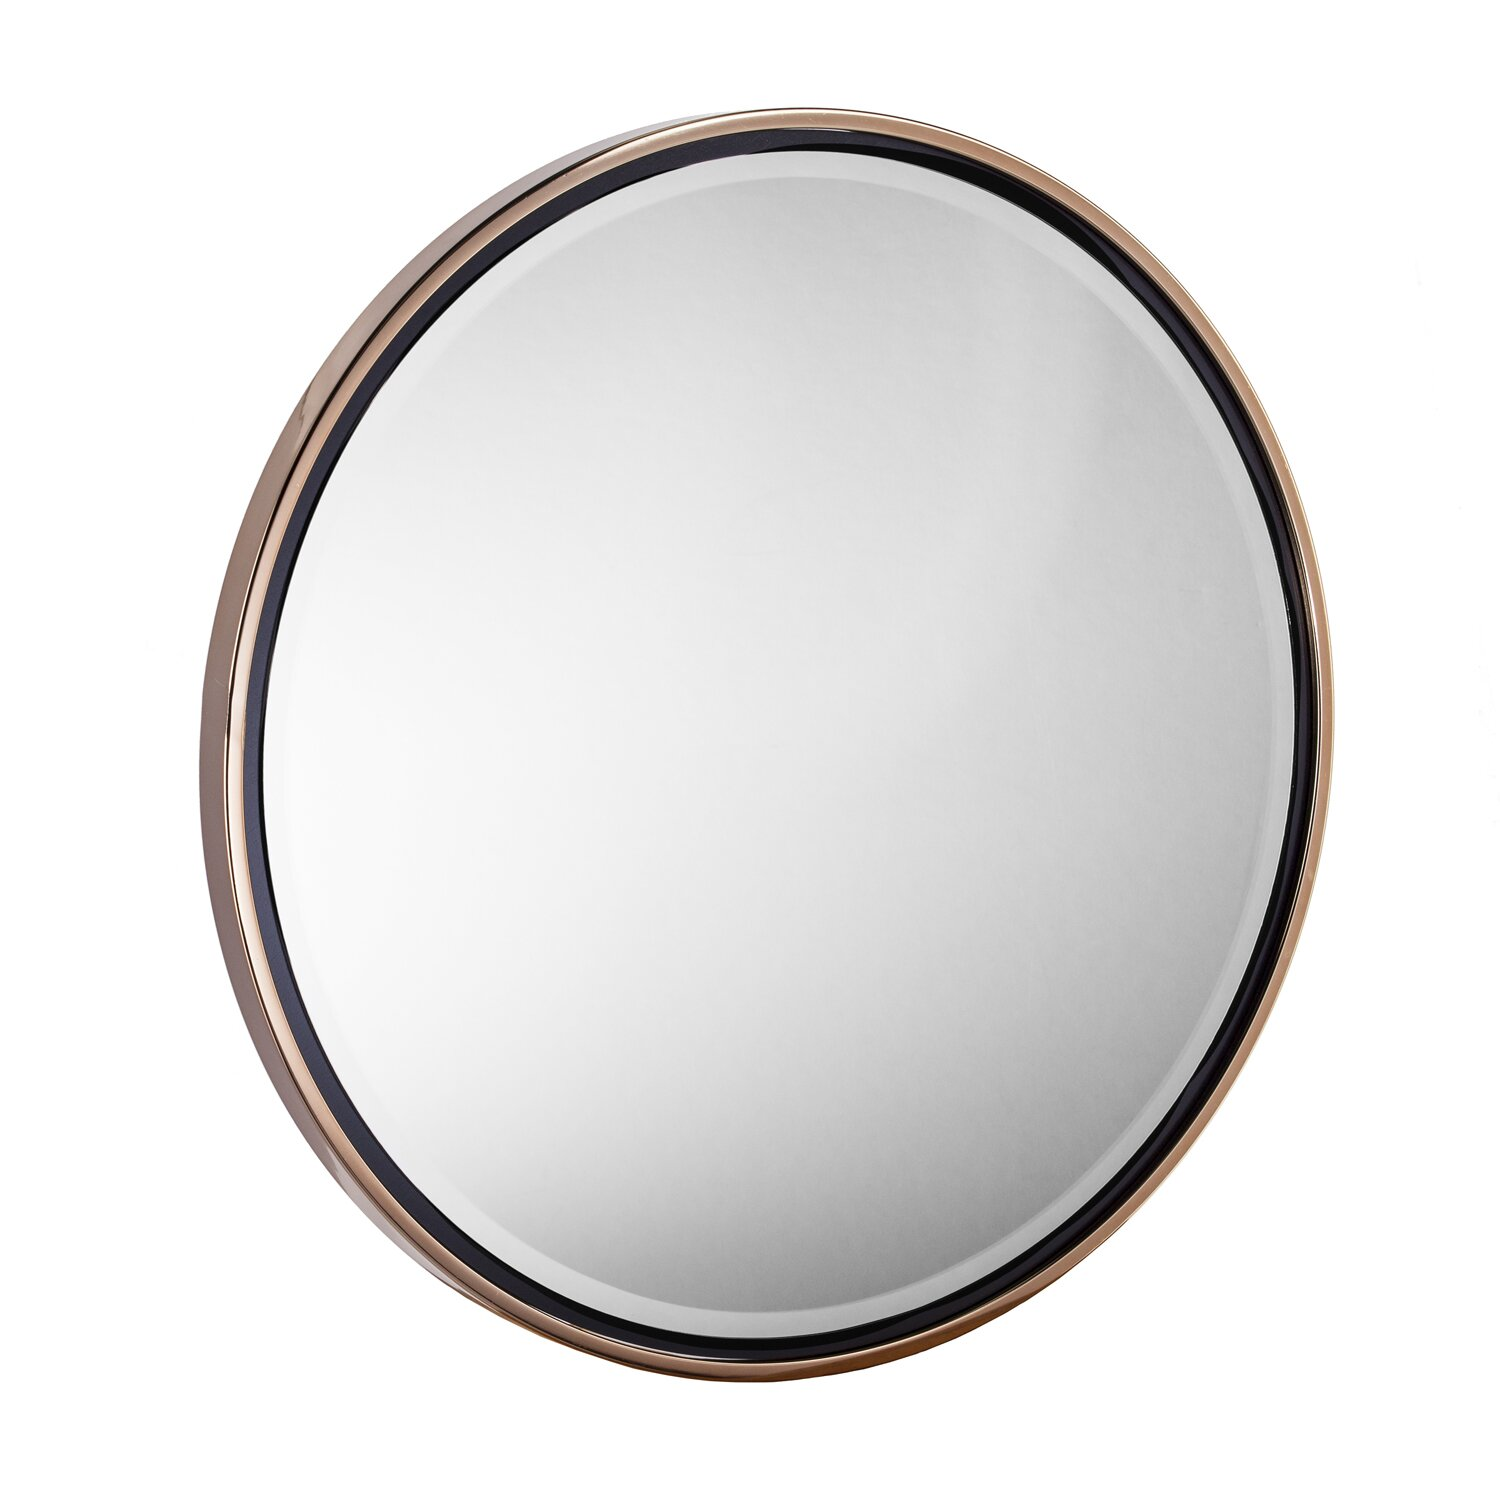 Willa Arlo Interiors Contemporary Round Wall Mirror Reviews